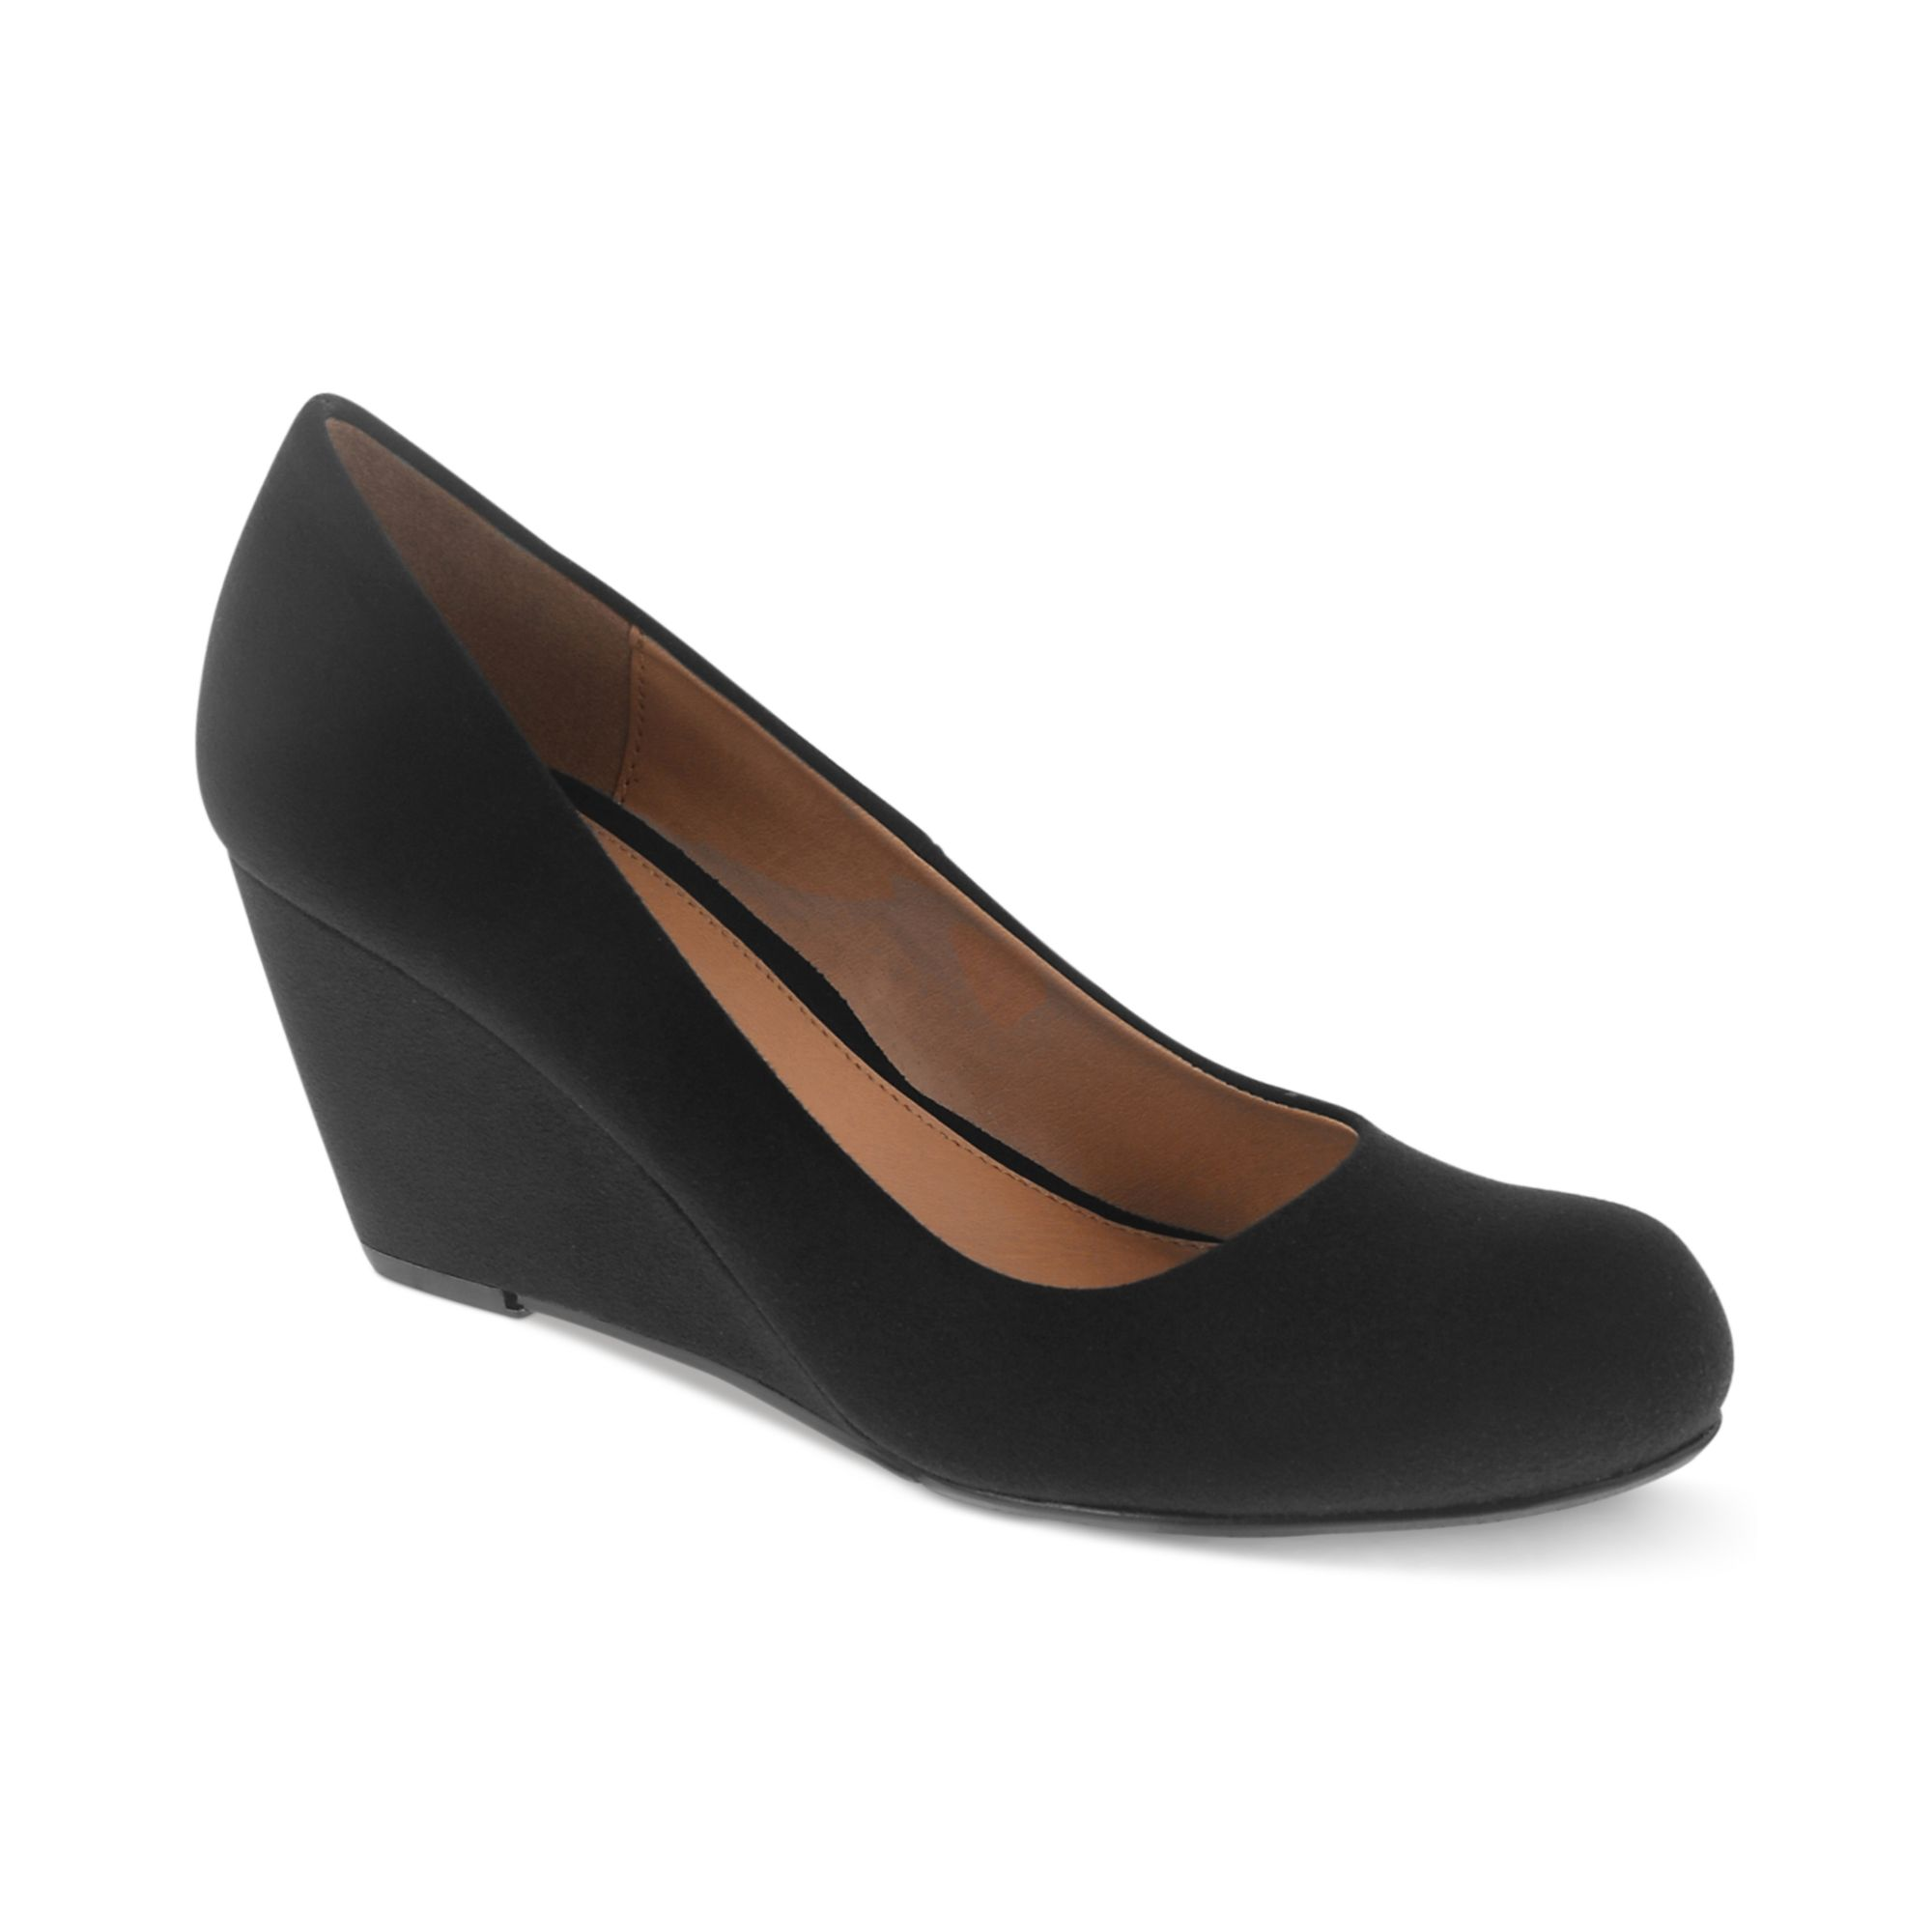 Chinese Laundry Cl By Laundry Shoes Nima Wedges in Red - Lyst